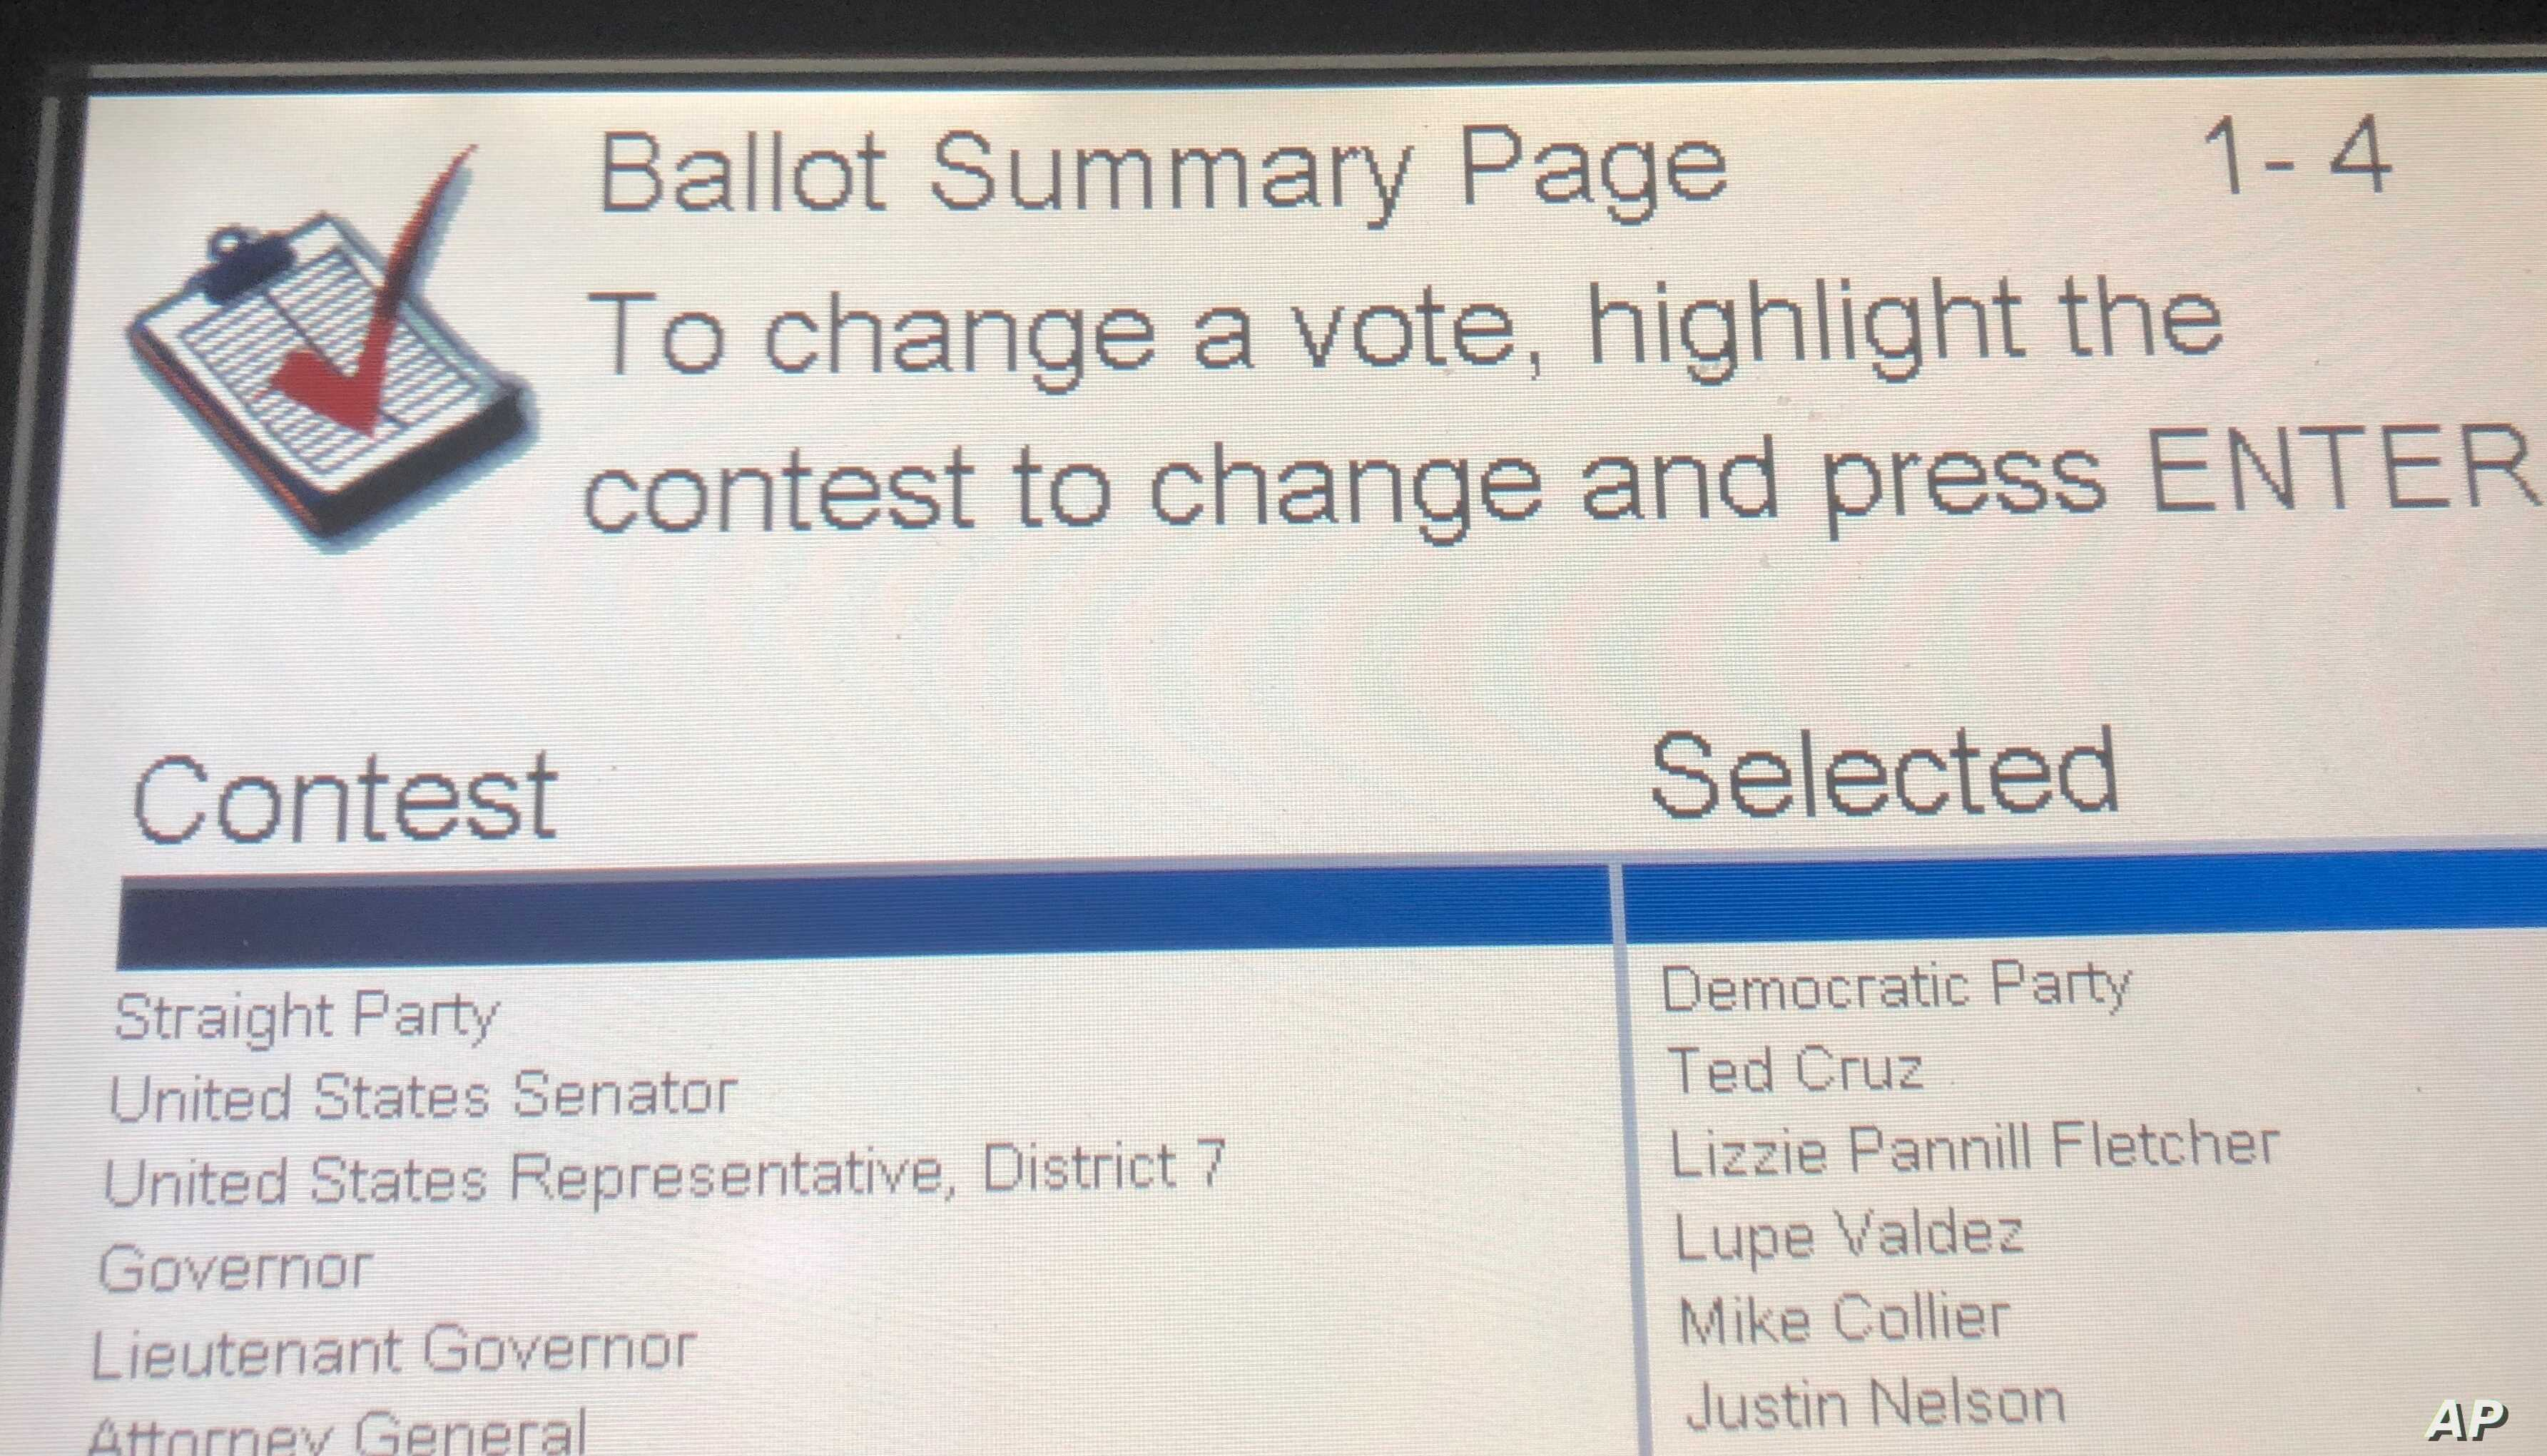 Summary of the ballot or the